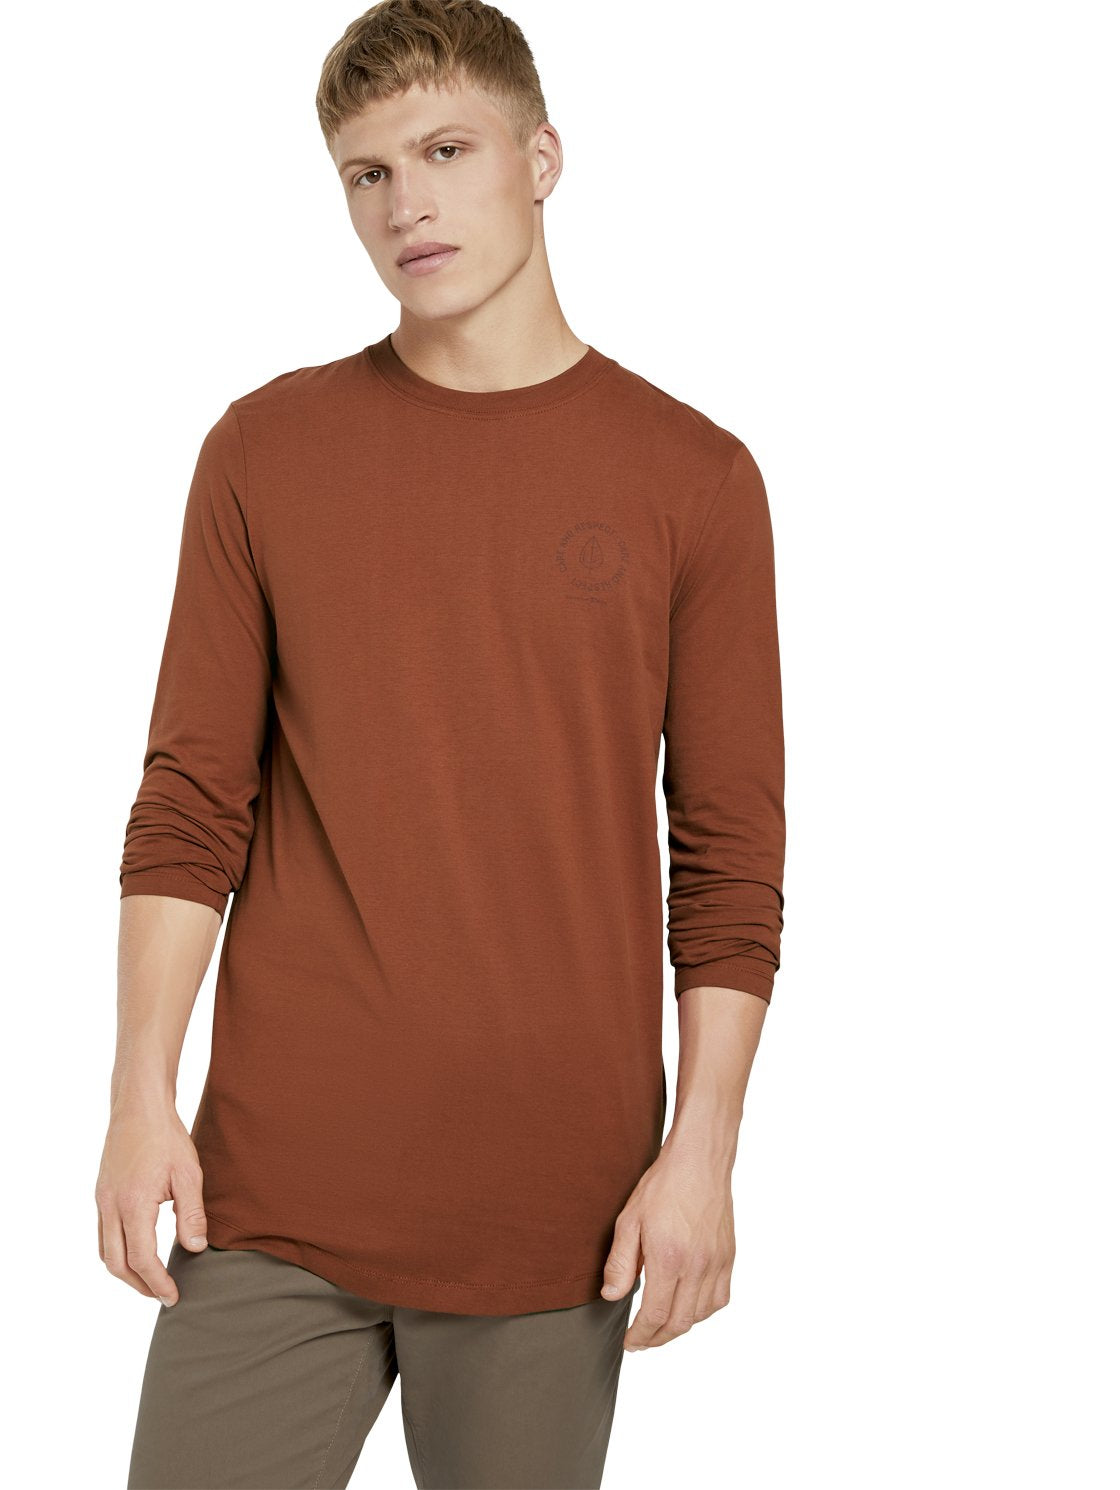 Tom Tailor 1021900 t-shirt orange